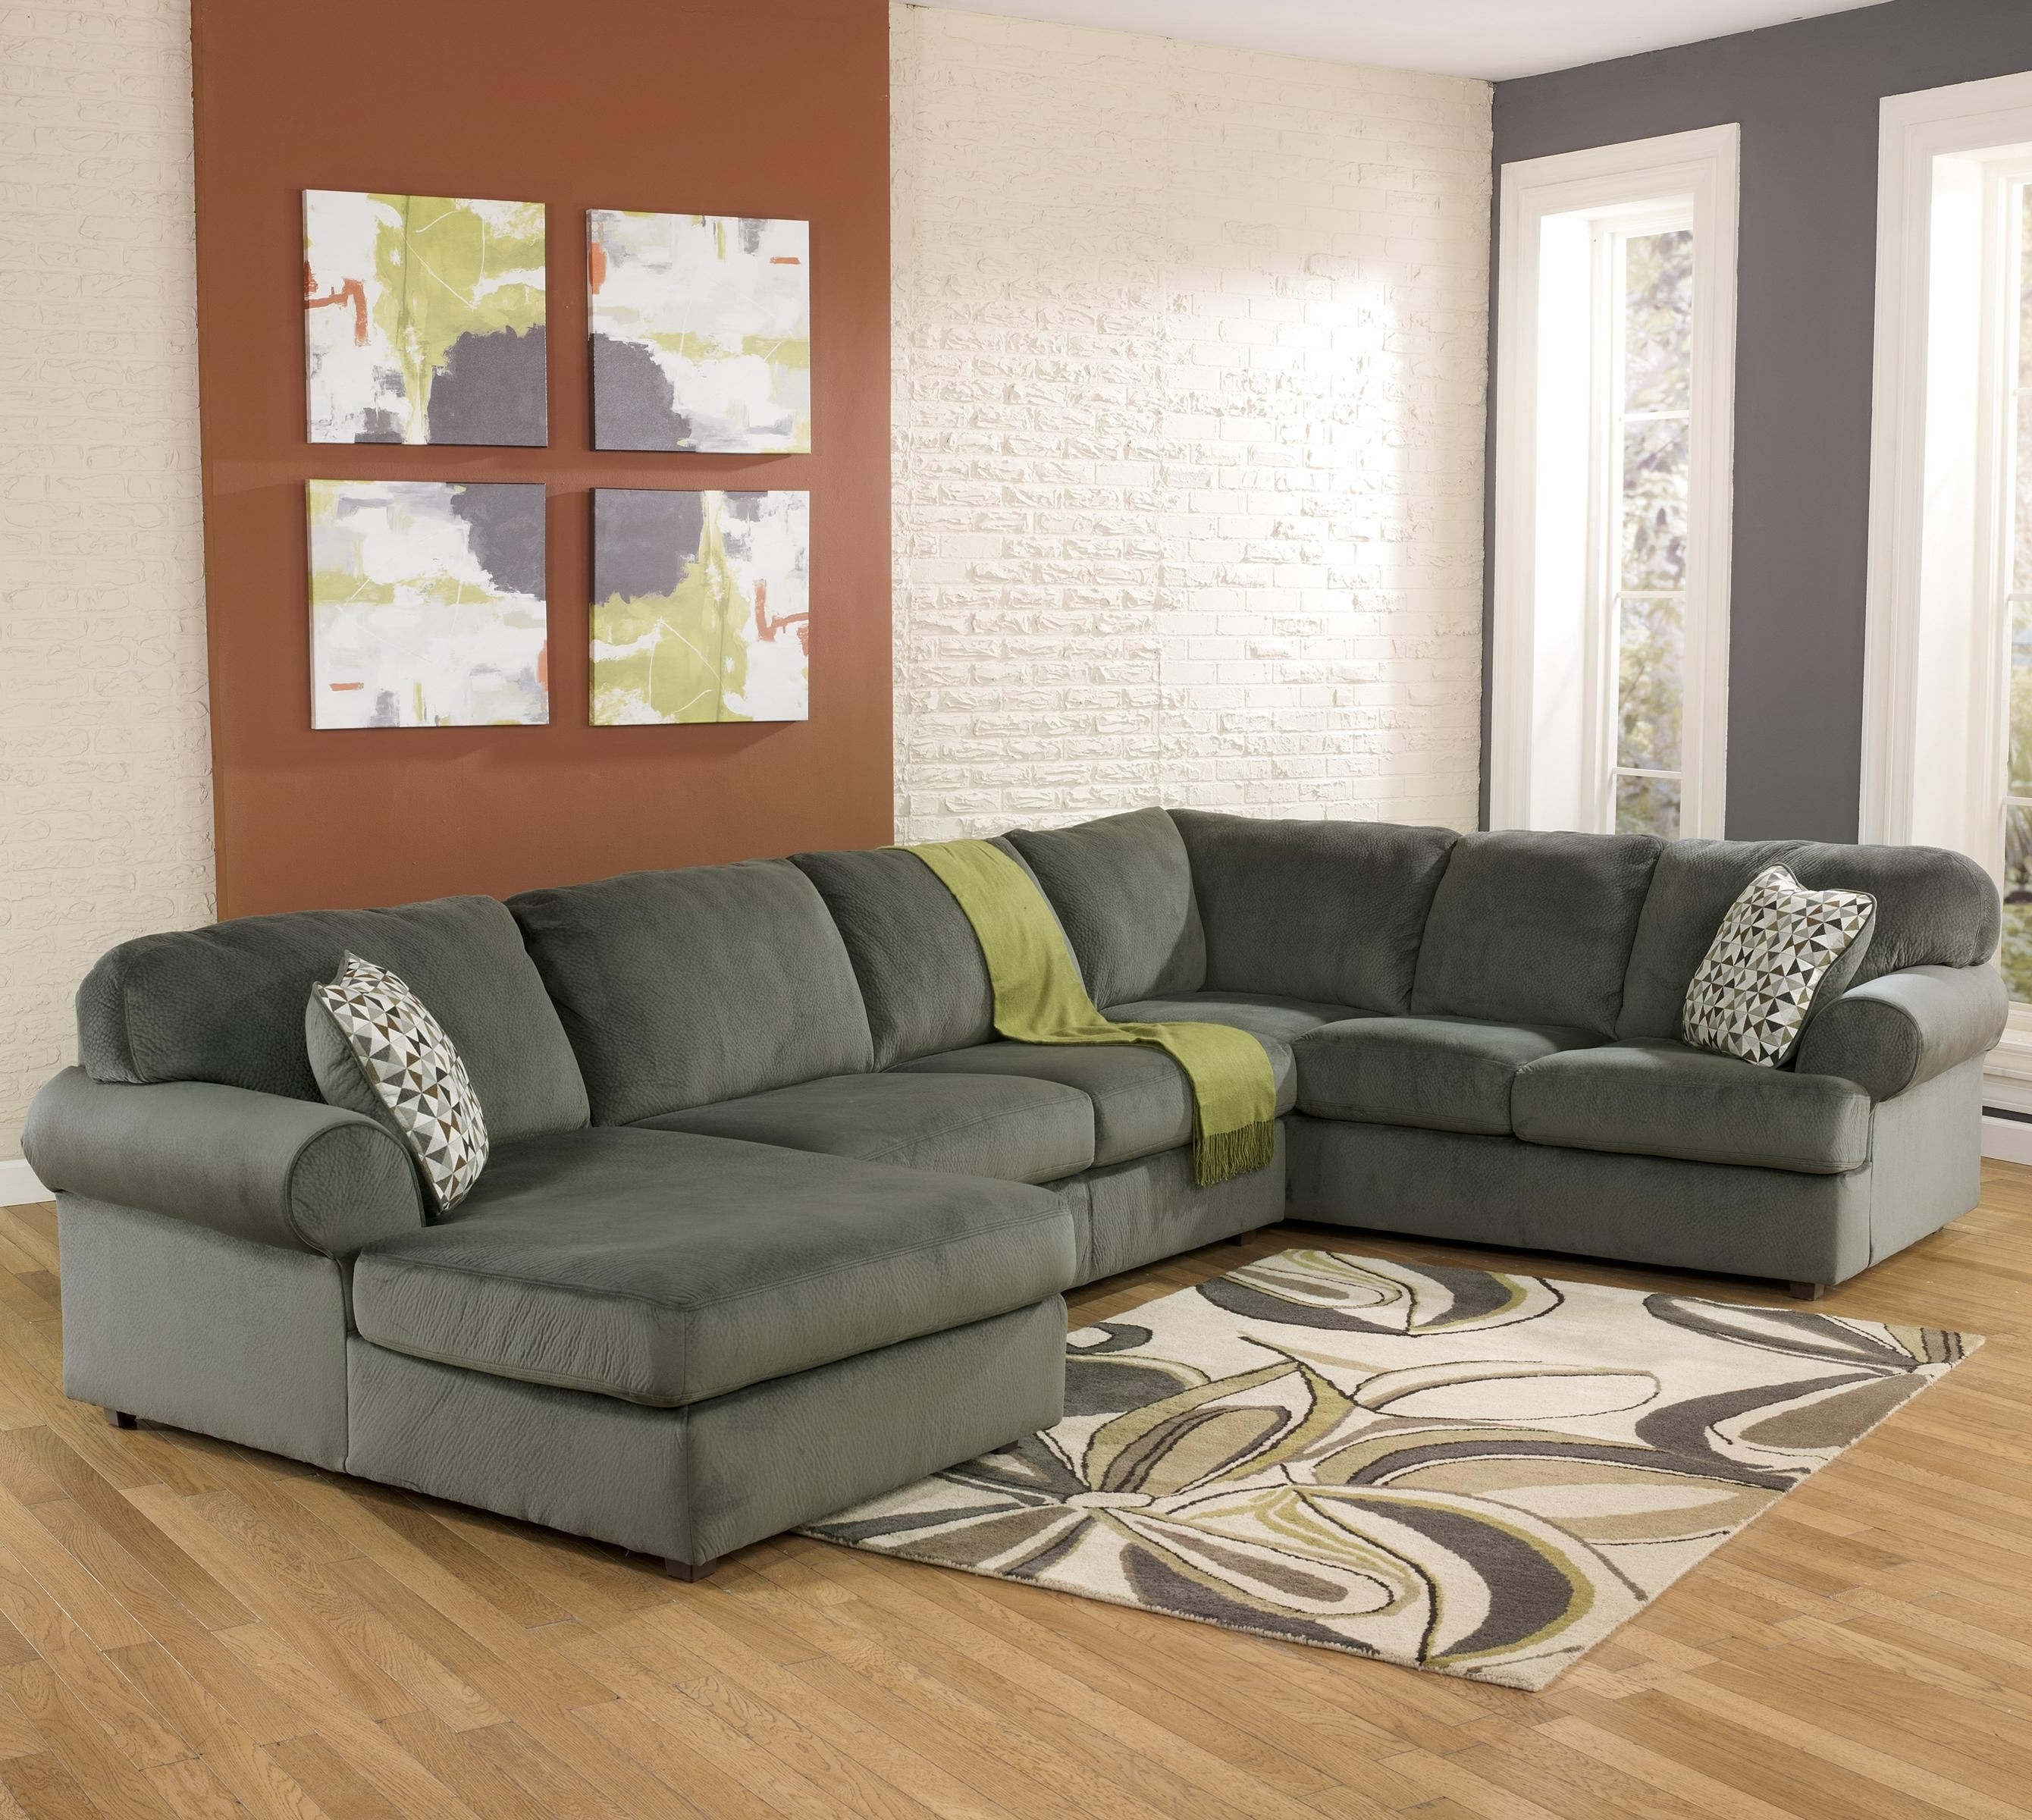 Famous Pensacola Fl Sectional Sofas In Jessa Place Pewter Casual Sofa With Right Chaise